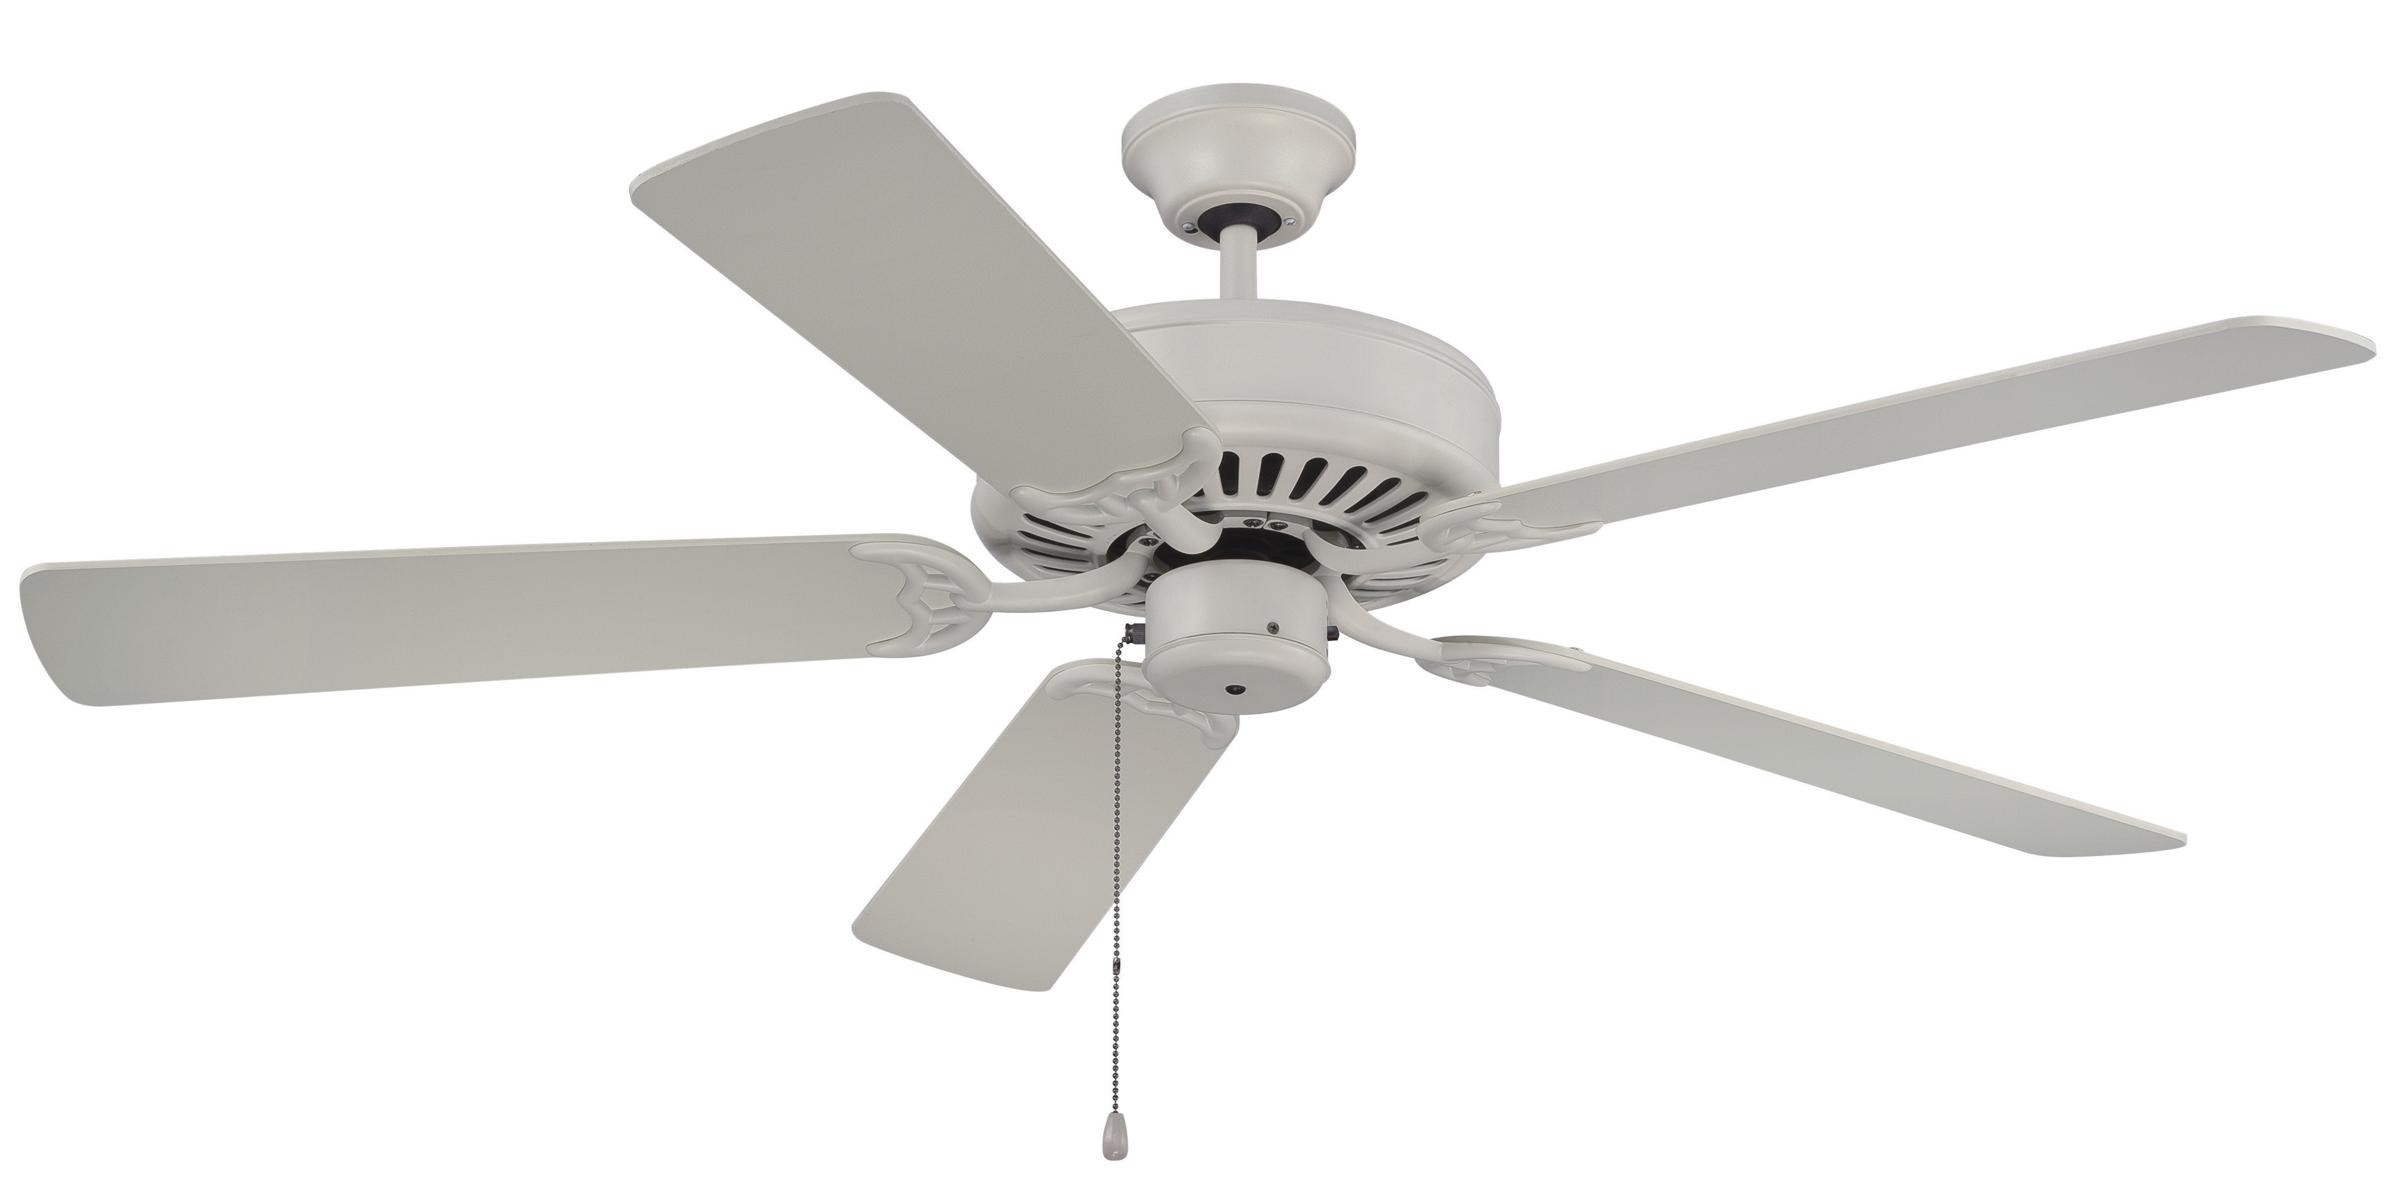 Craftmade Pro Builder Ceiling Fan Model C52Aw In Antique White With Regard To Most Popular Craftmade Outdoor Ceiling Fans Craftmade (View 11 of 20)